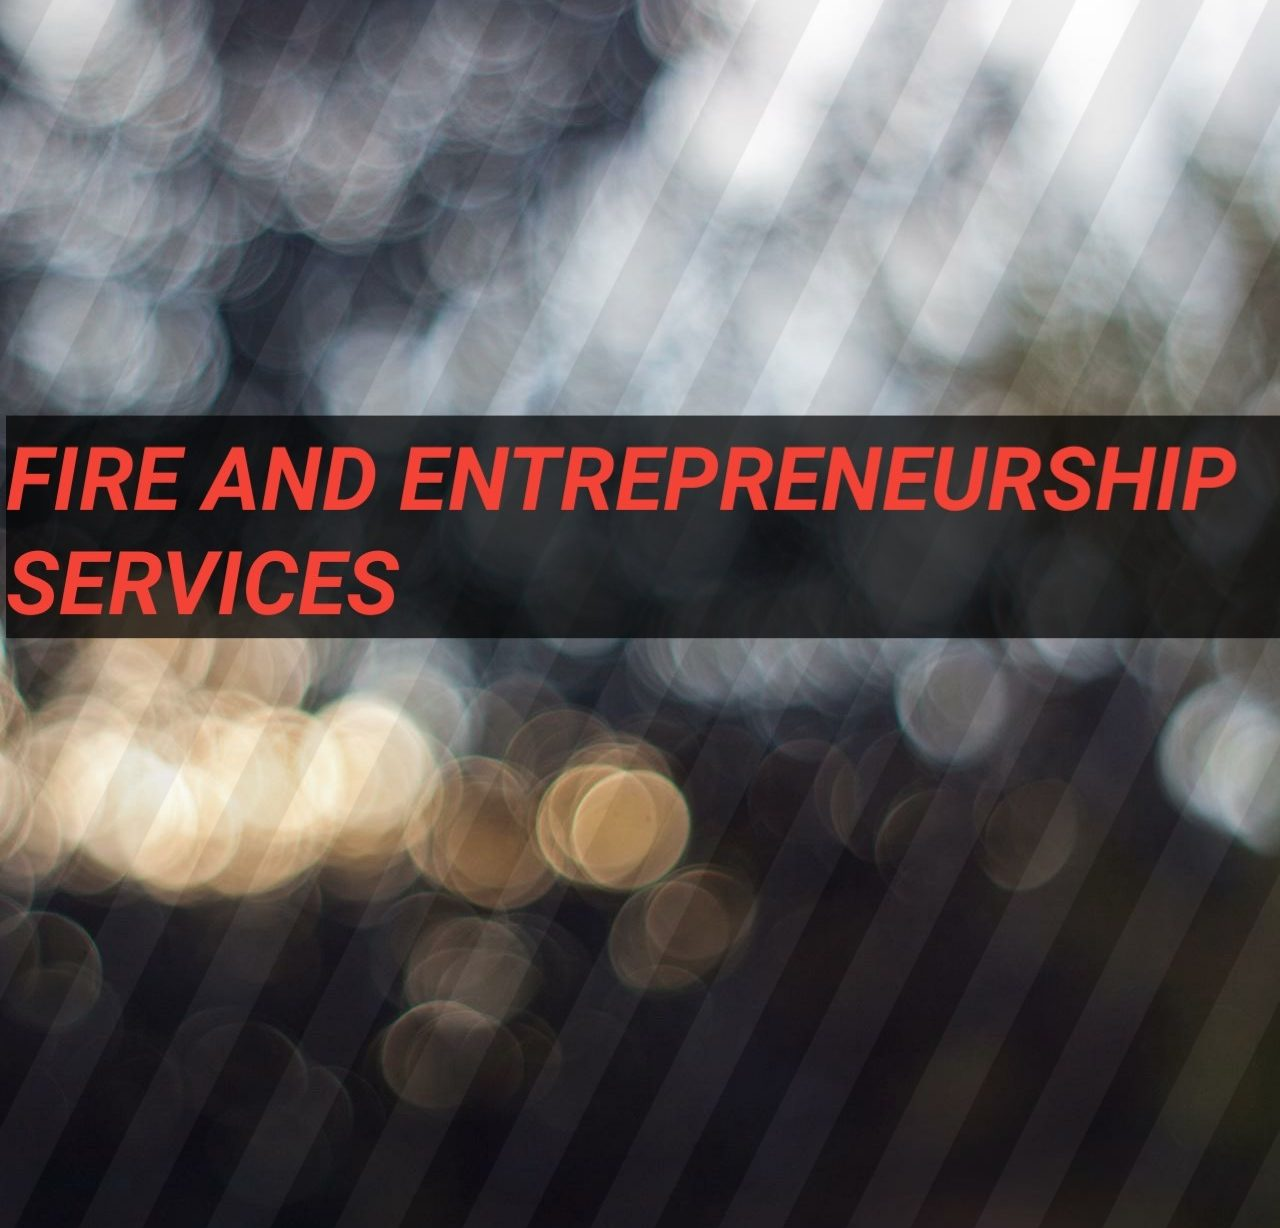 Fire and Entrepreneurship Services